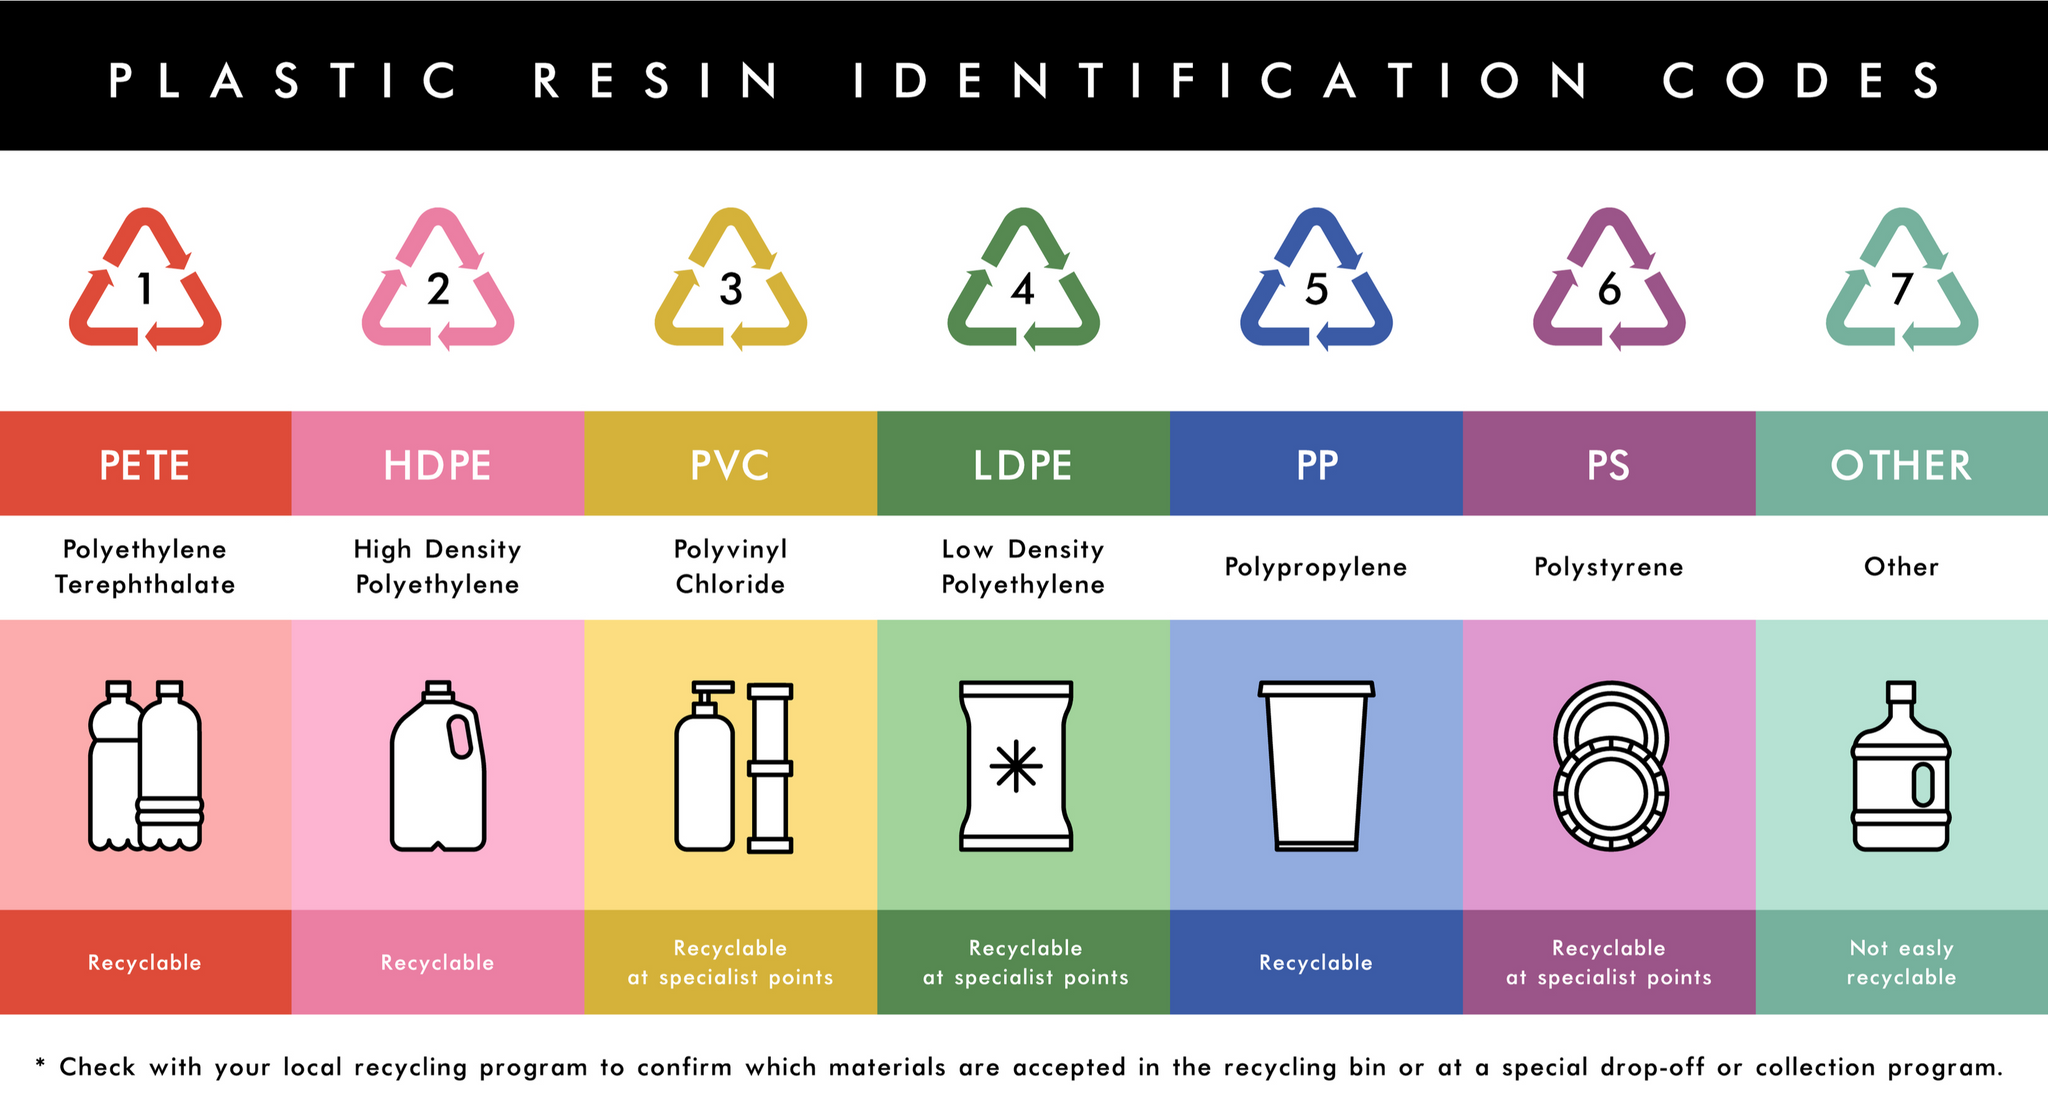 Recycling codes depicted with icons of recyclable items underneath and short descriptions for each code.